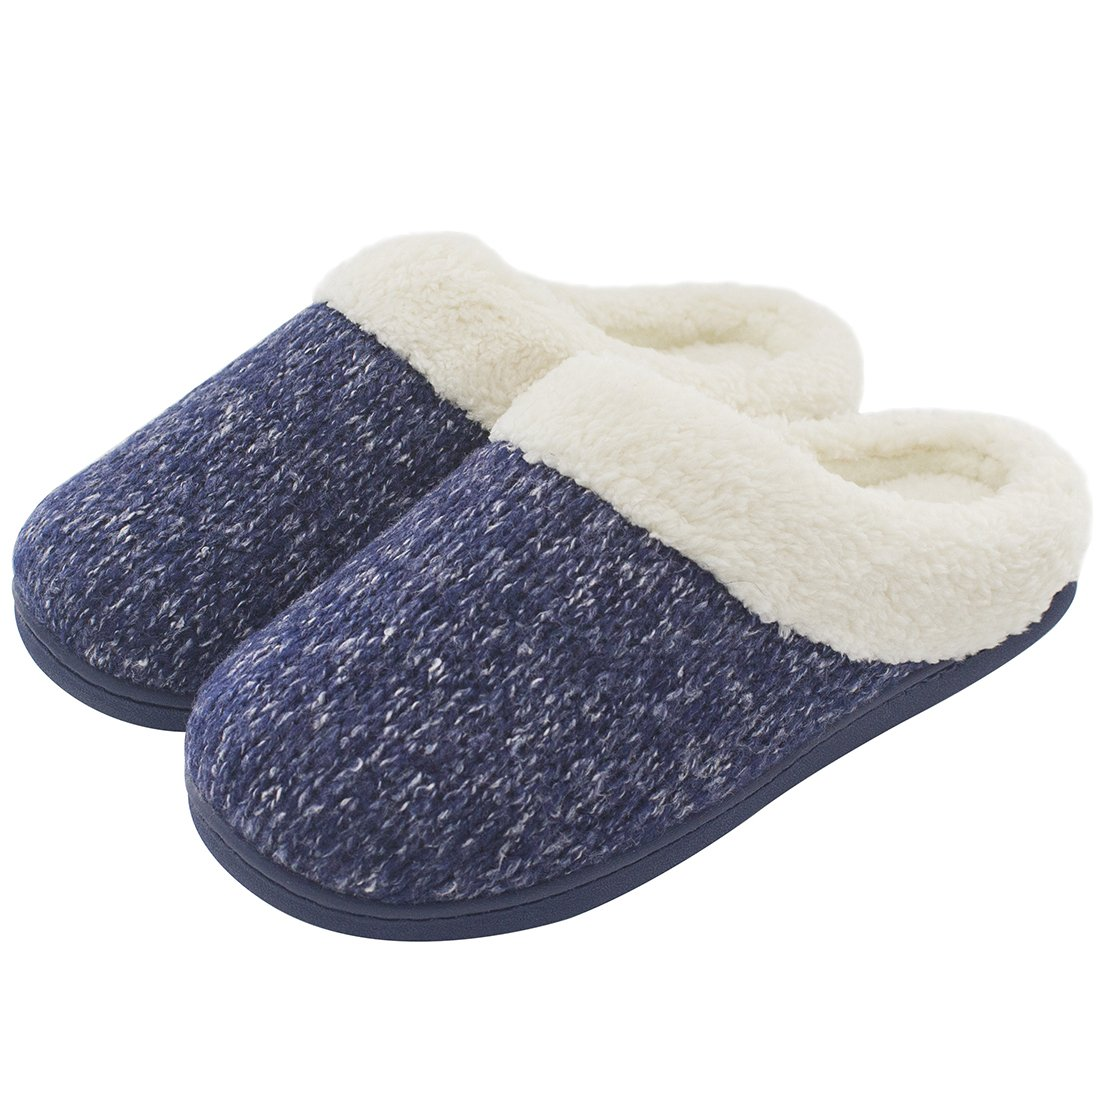 Women's Cozy Woolen Yarn Knitted Slippers Memory Foam Plush Lining Slip-on House Shoes w/Anti-Slip Sole, Indoor/Outdoor (Large / 9-10 B(M) US, Navy Blue)